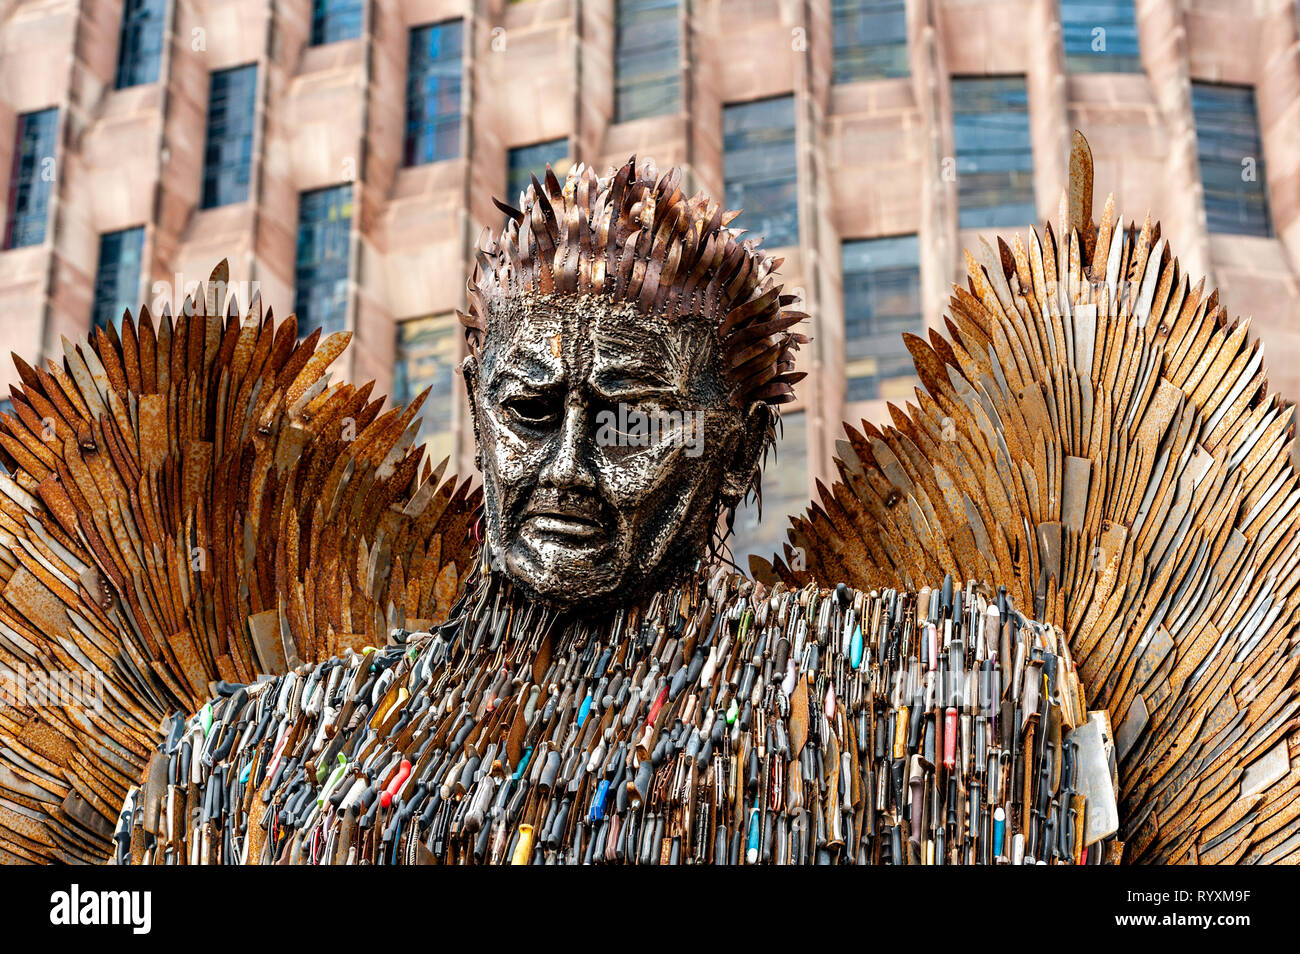 coventry-west-midlands-uk-15th-march-2019-the-knife-angel-which-was-installed-at-coventry-cathedral-yesterday-drew-big-crowds-of-spectators-today-the-country-is-currently-in-a-grip-of-knife-violence-it-is-hoped-the-sculpture-will-highlight-the-issue-and-have-a-positive-effect-on-the-public-credit-andy-gibsonalamy-live-news-RYXM9F.jpg